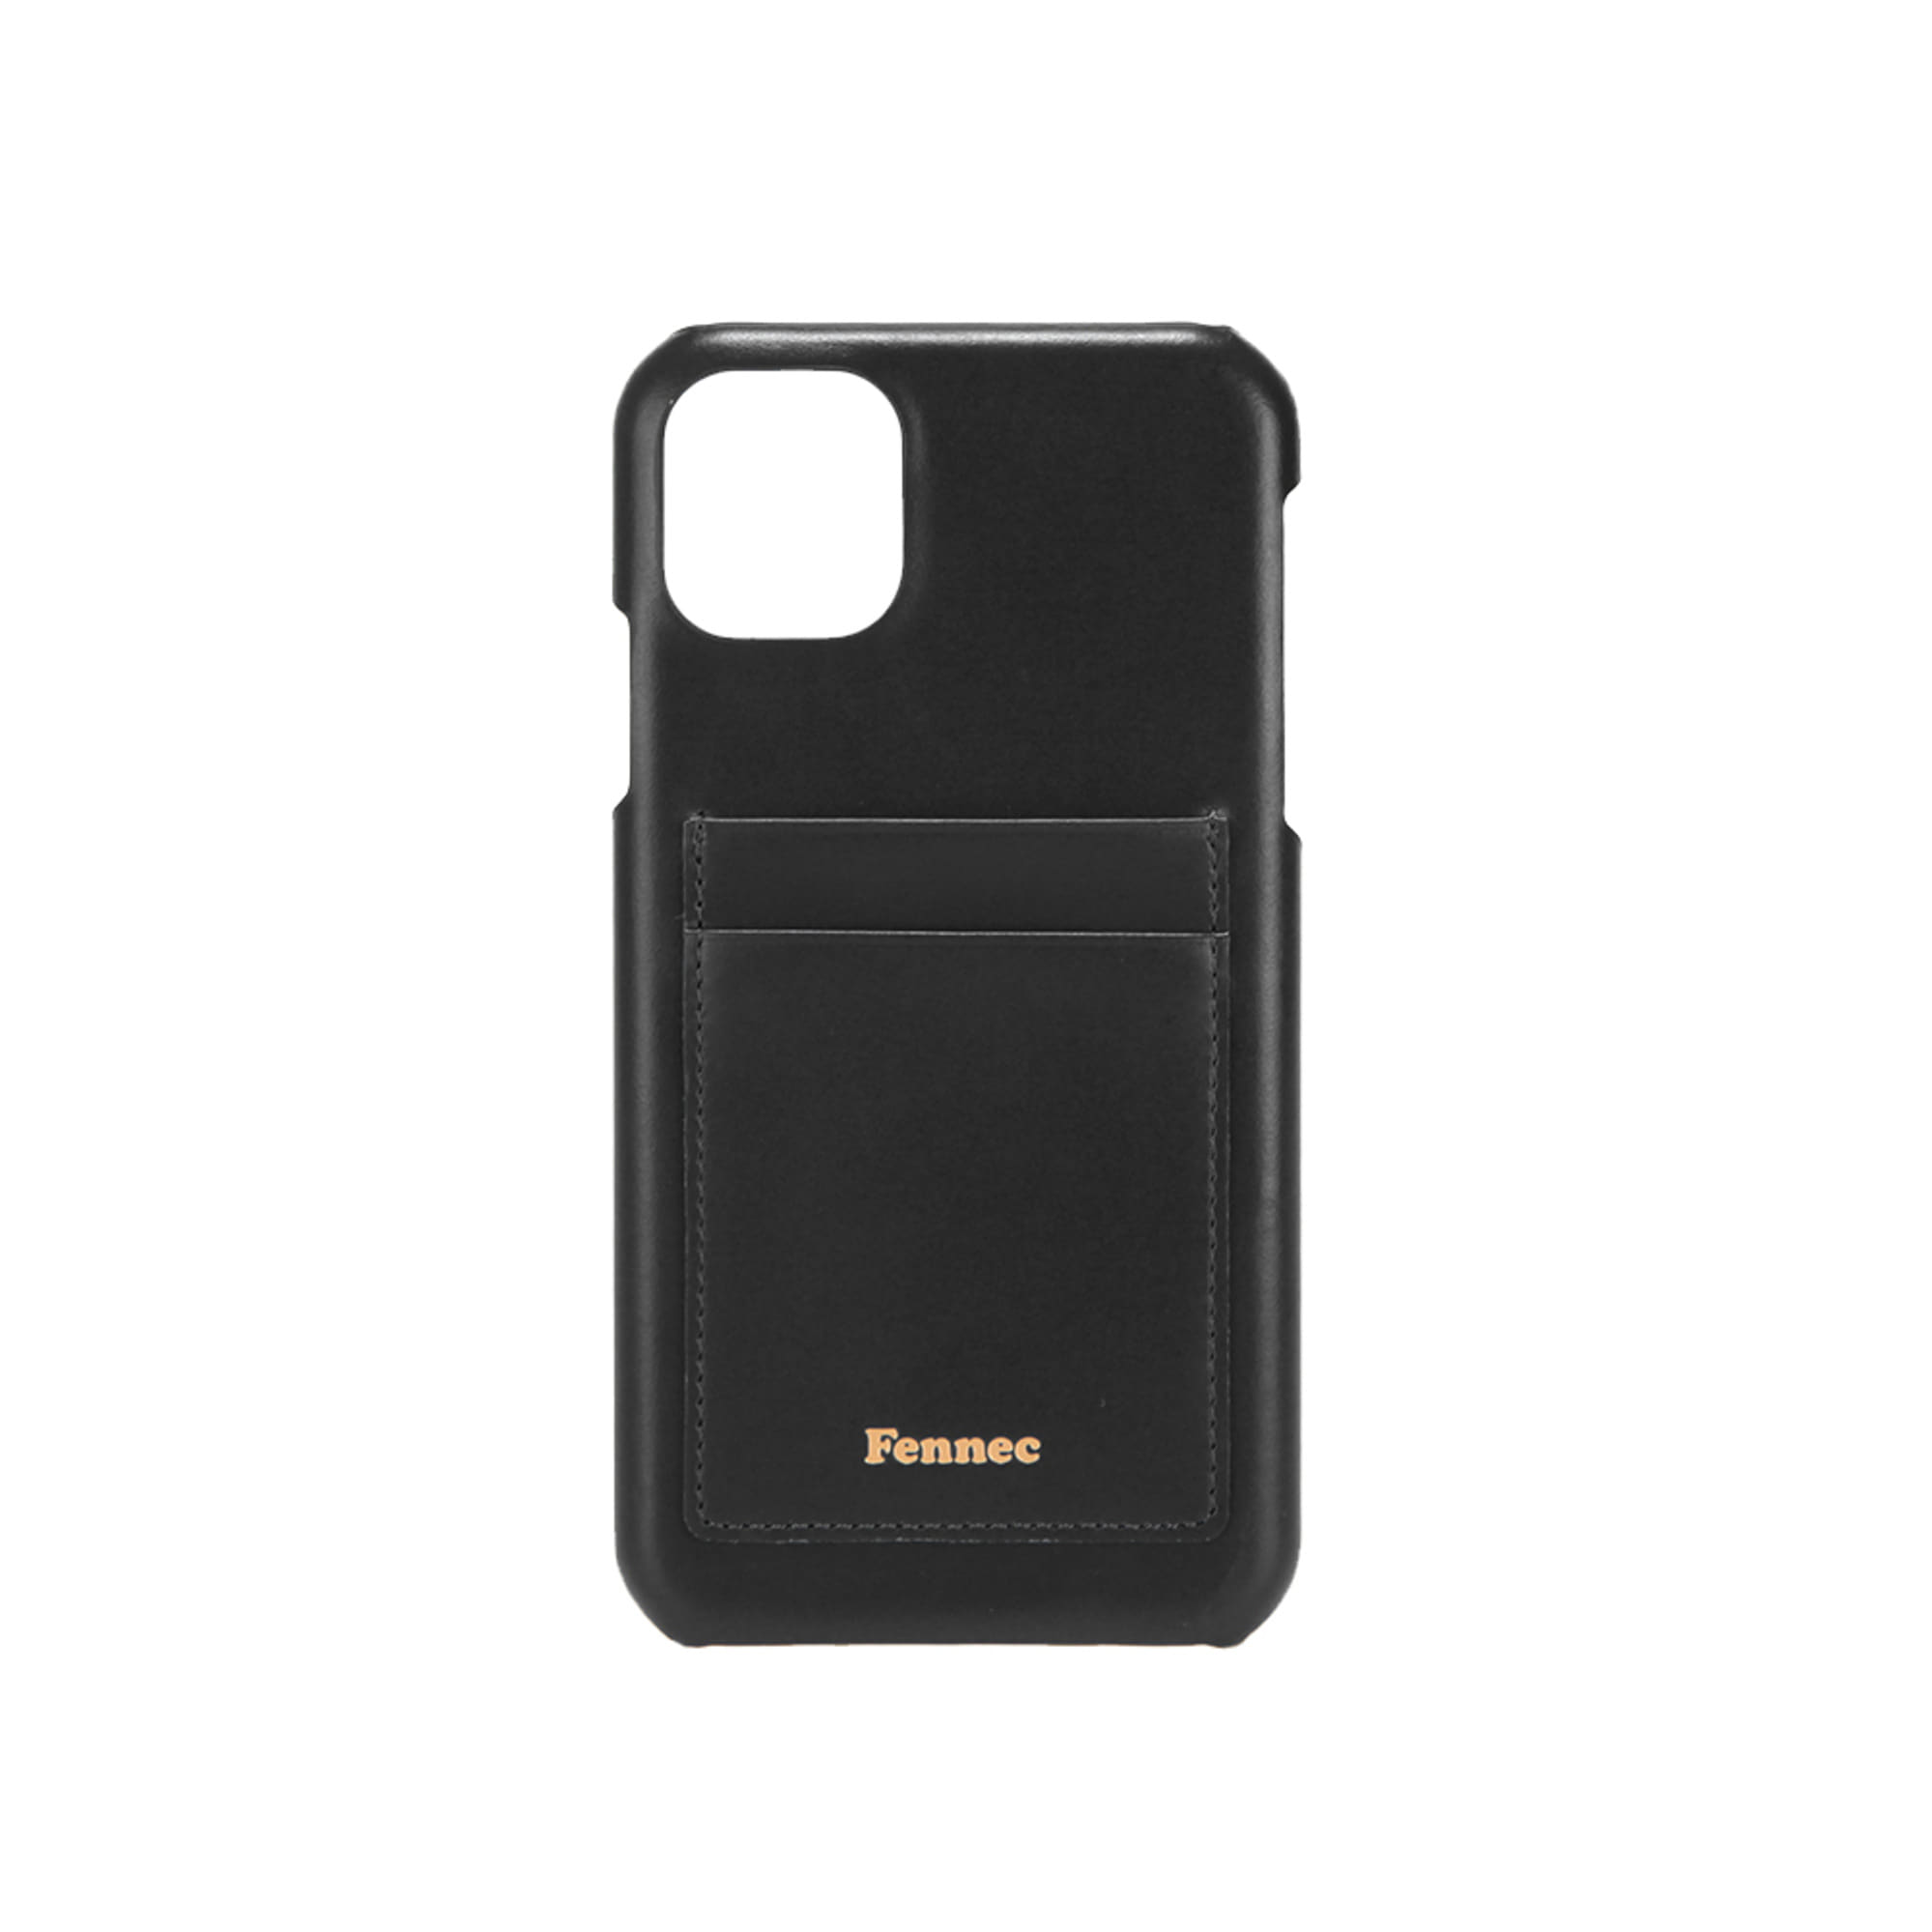 Fennec 페넥 C&S LEATHER iPHONE 11 CARD CASE (4색상)